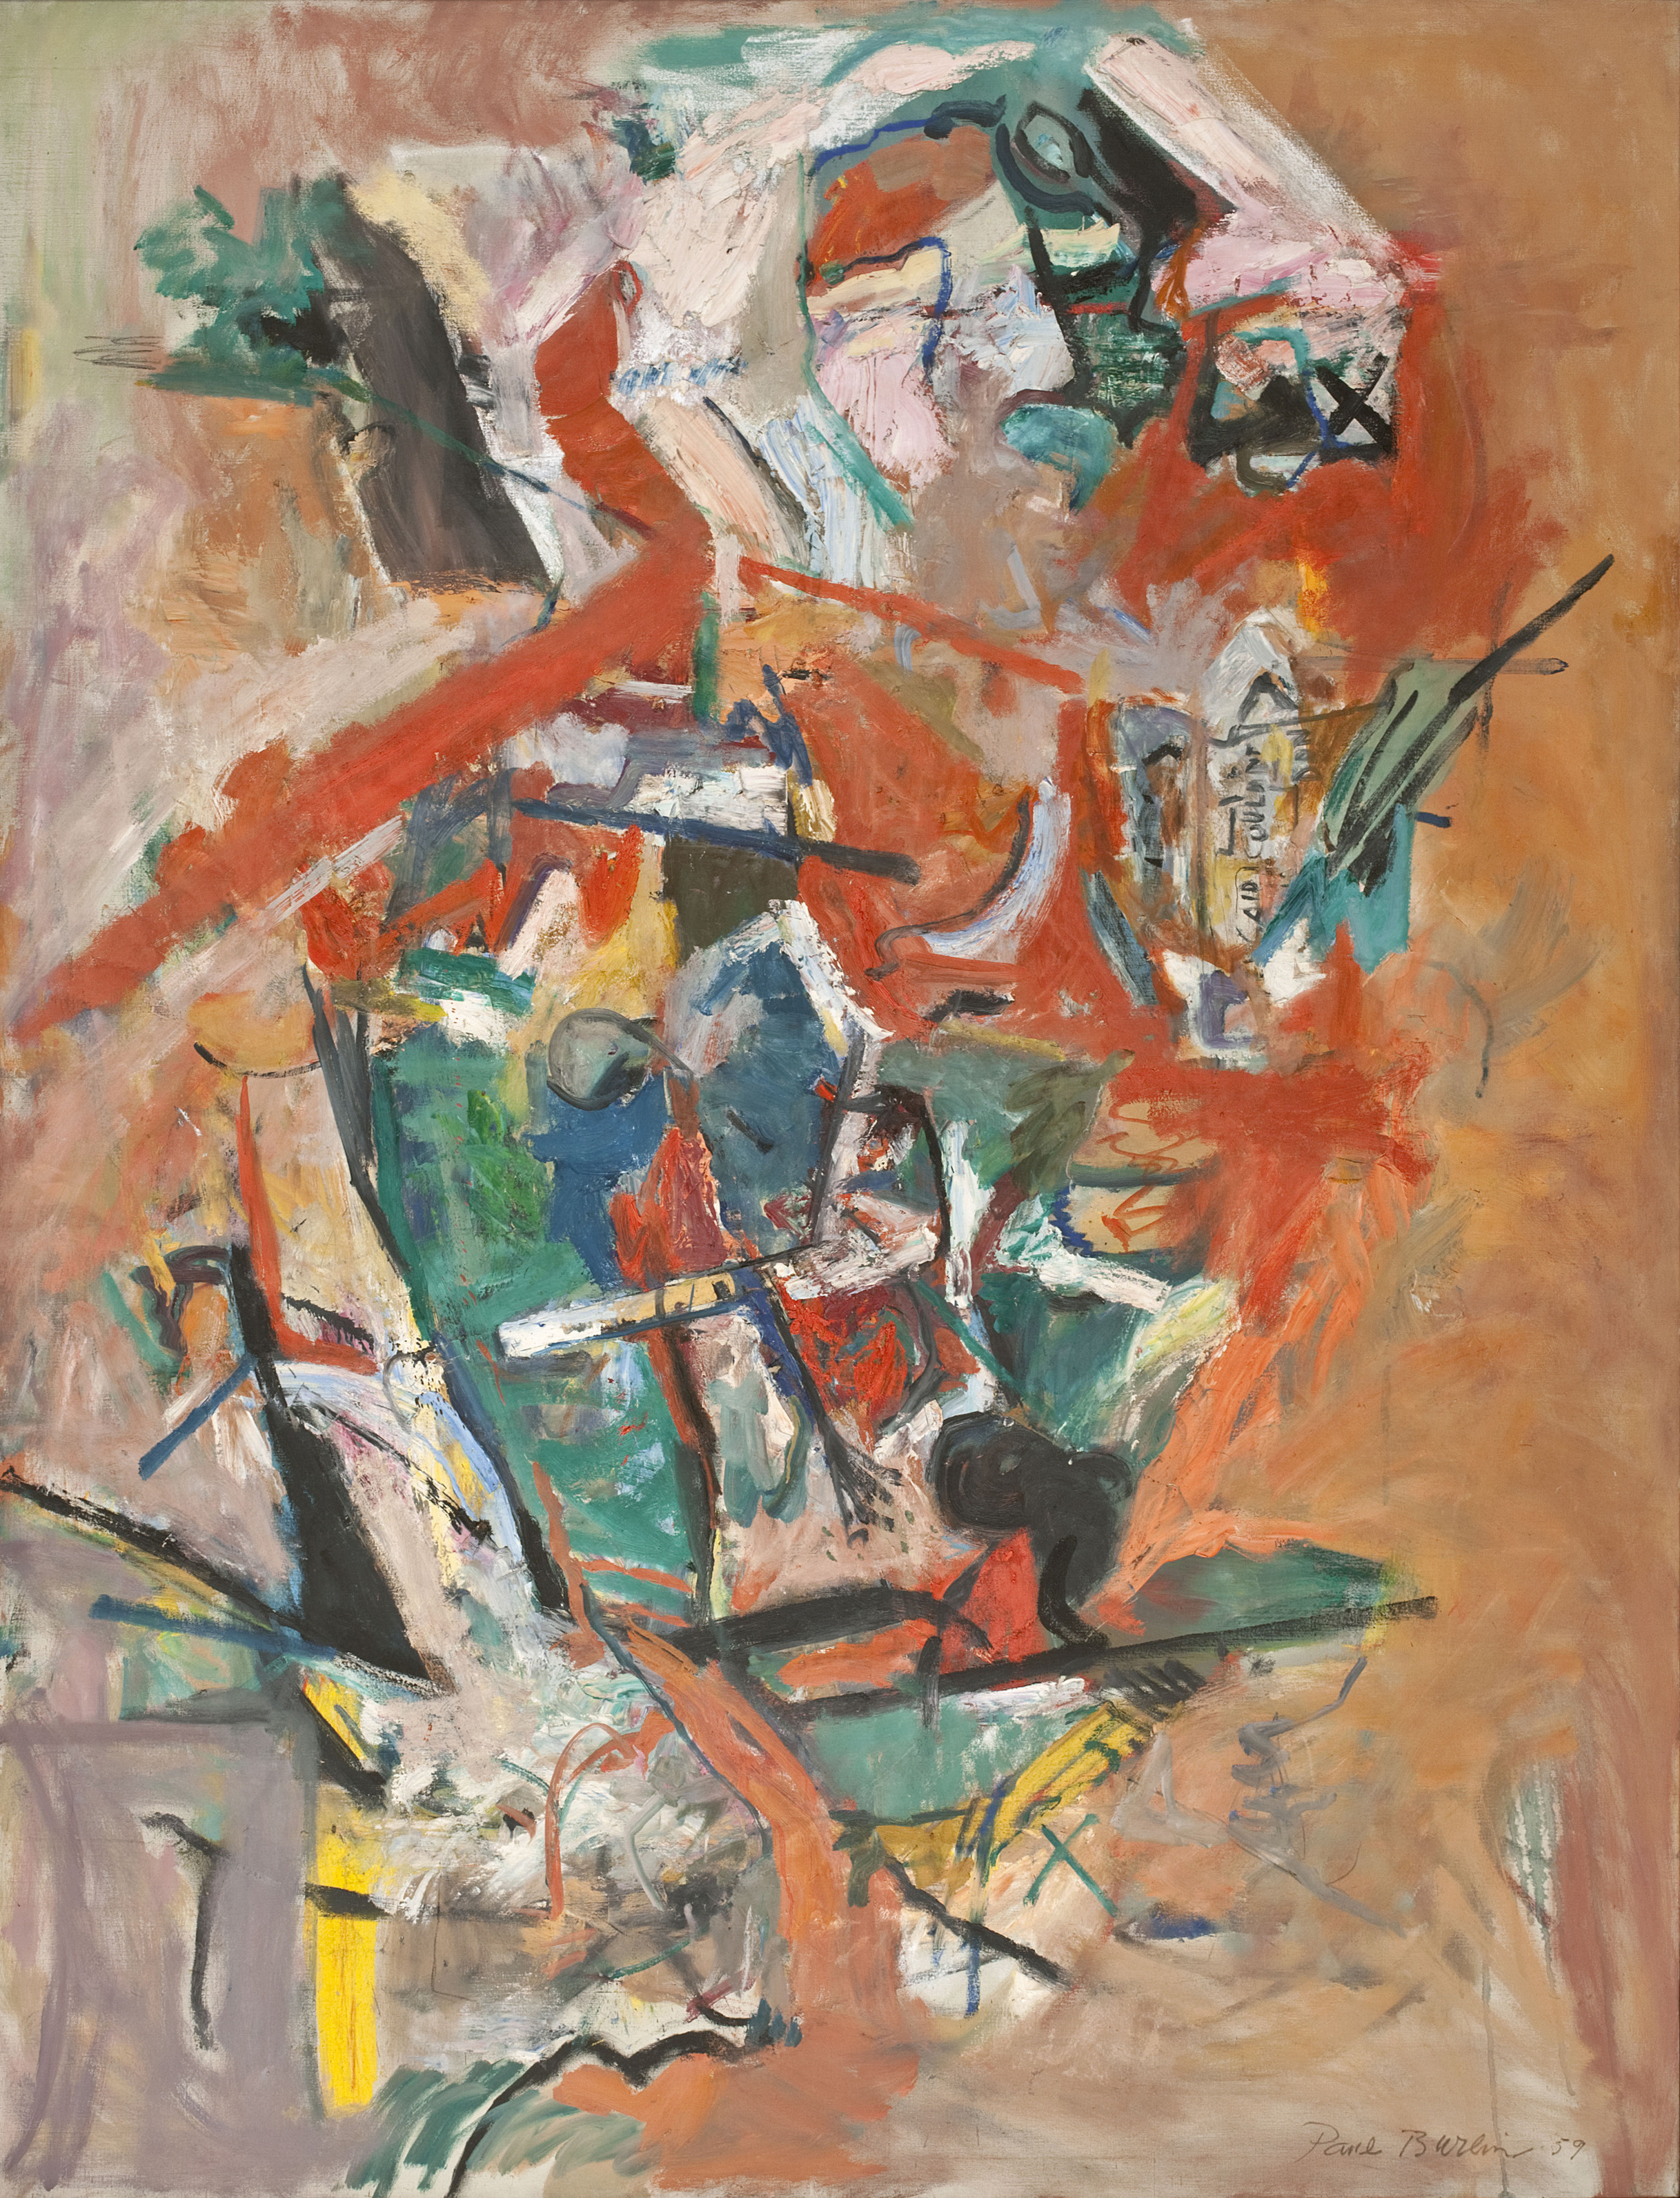 Said Couldn't Be Done, 1959  , oil on canvas, 1959, 84 x 66 inches